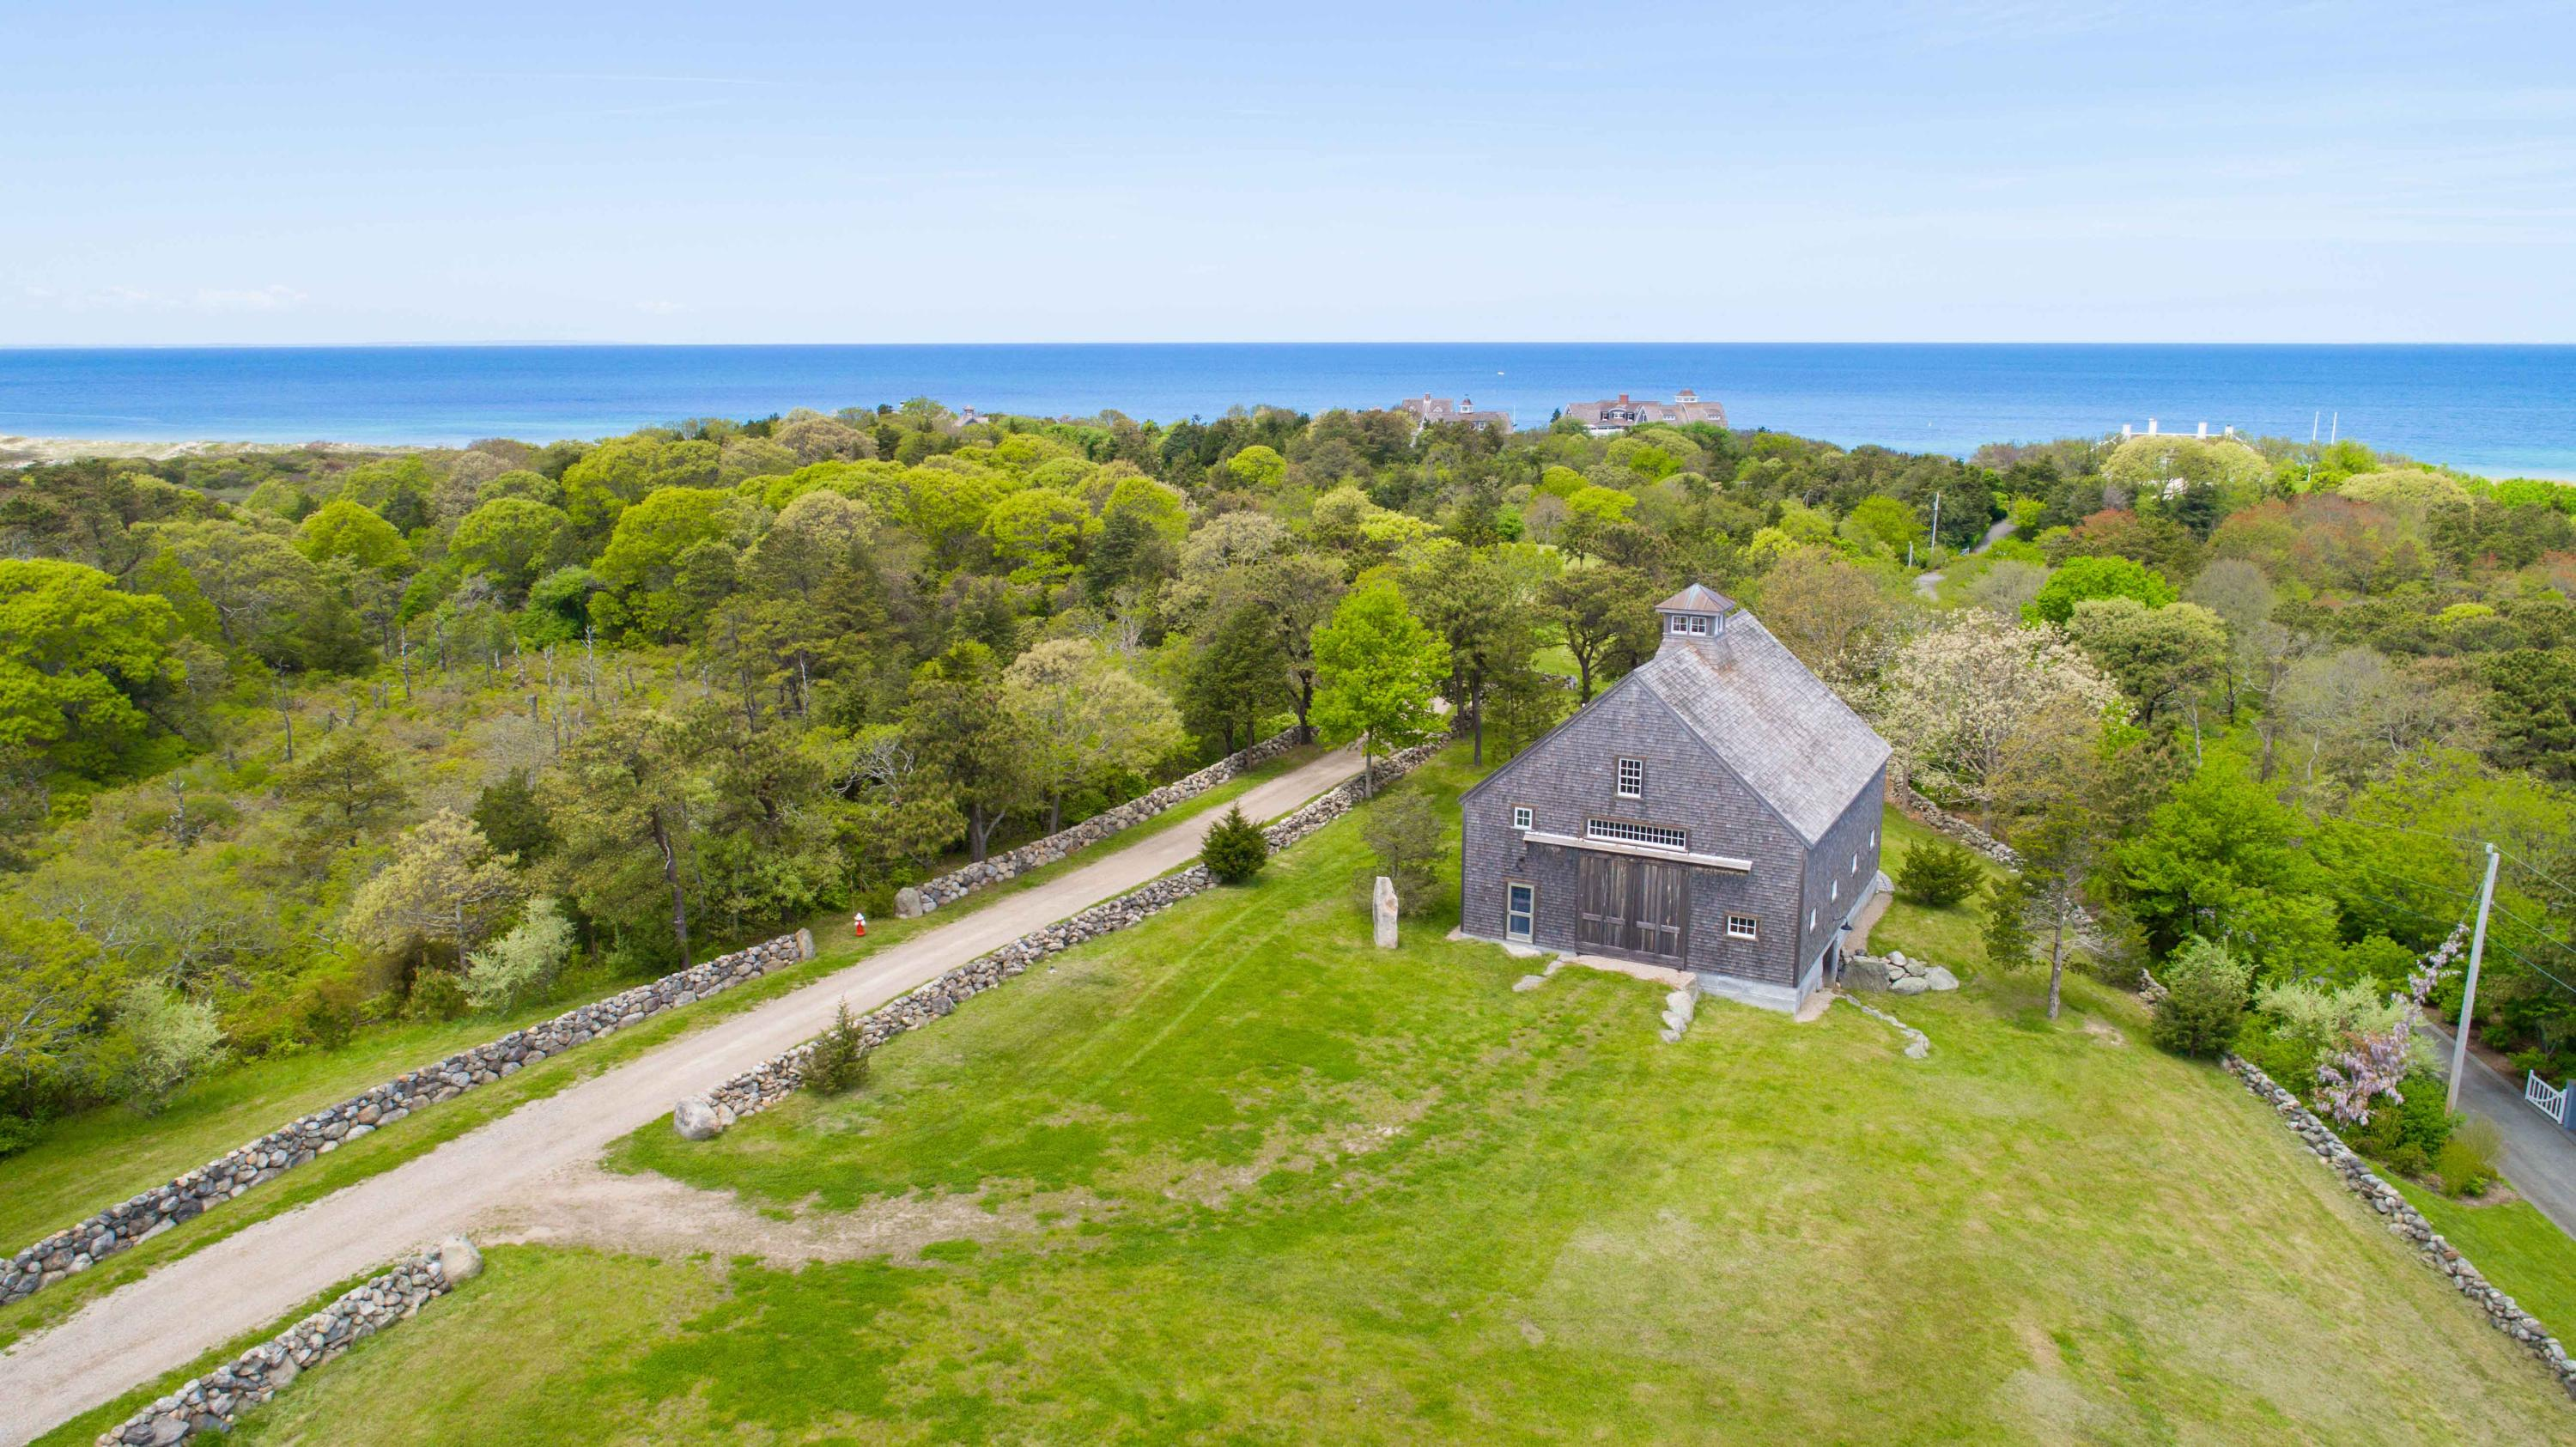 56 Old Town Lane, East Dennis MA, 02641